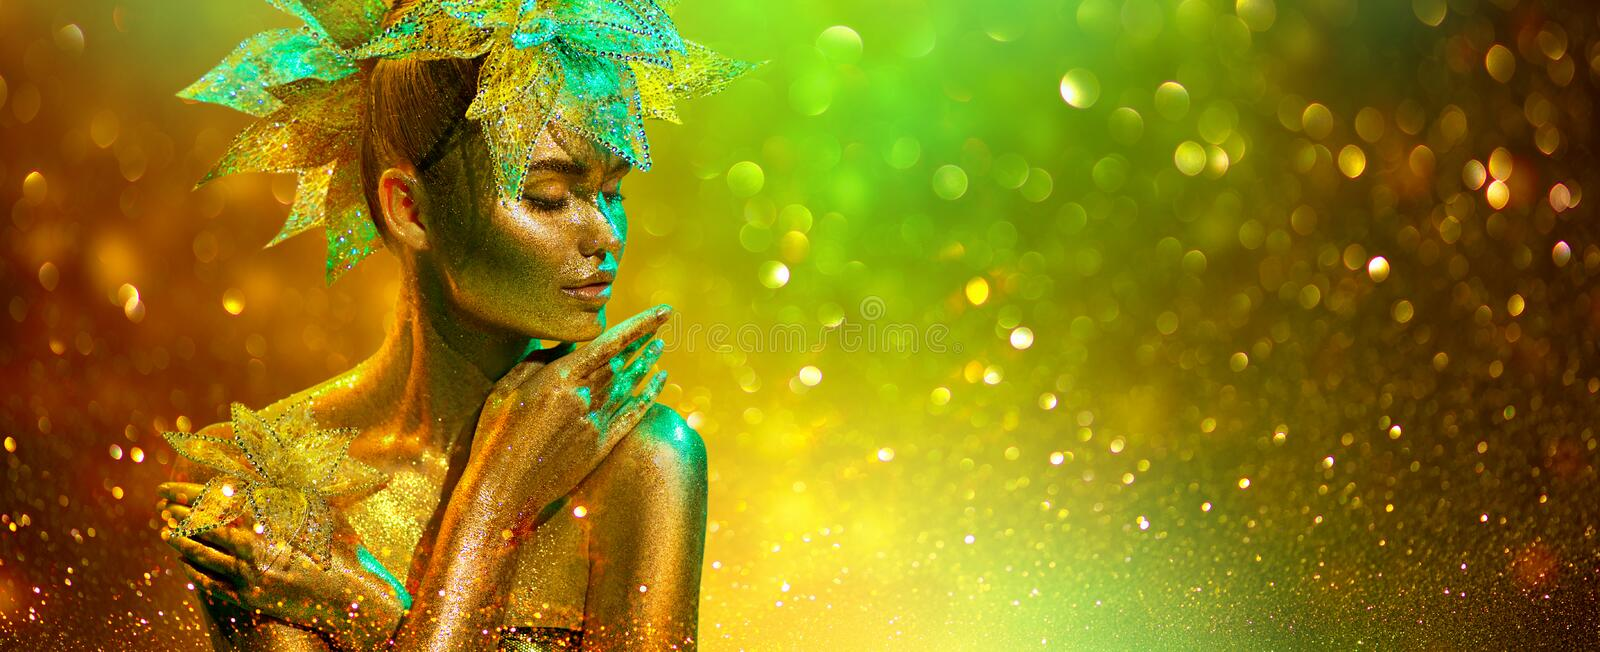 Golden Fashion model woman with bright golden sparkles on skin posing, fantasy flower, portrait of beautiful girl glowing makeup stock photography